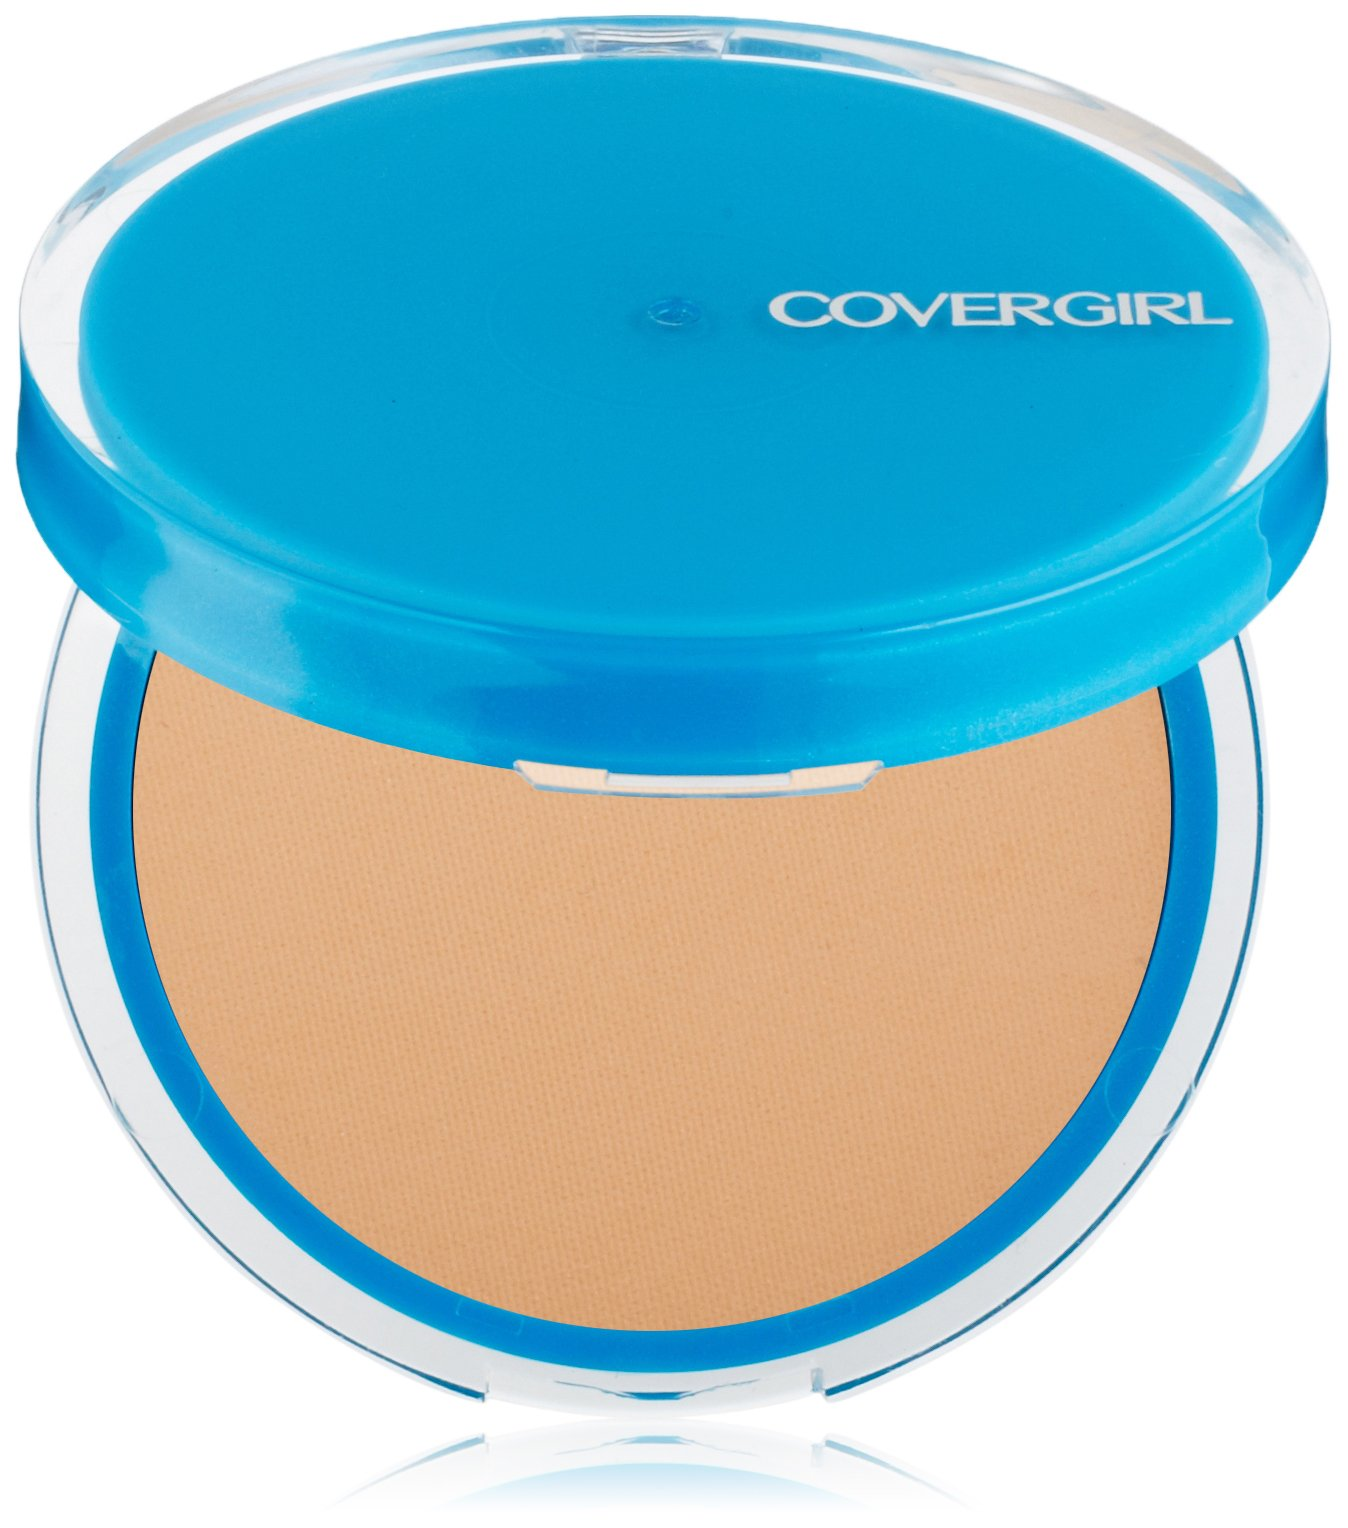 CoverGirl Clean Oil Control Pressed Powder, Warm Beige 545, 0.35-Ounce Pan (Pack of 2)